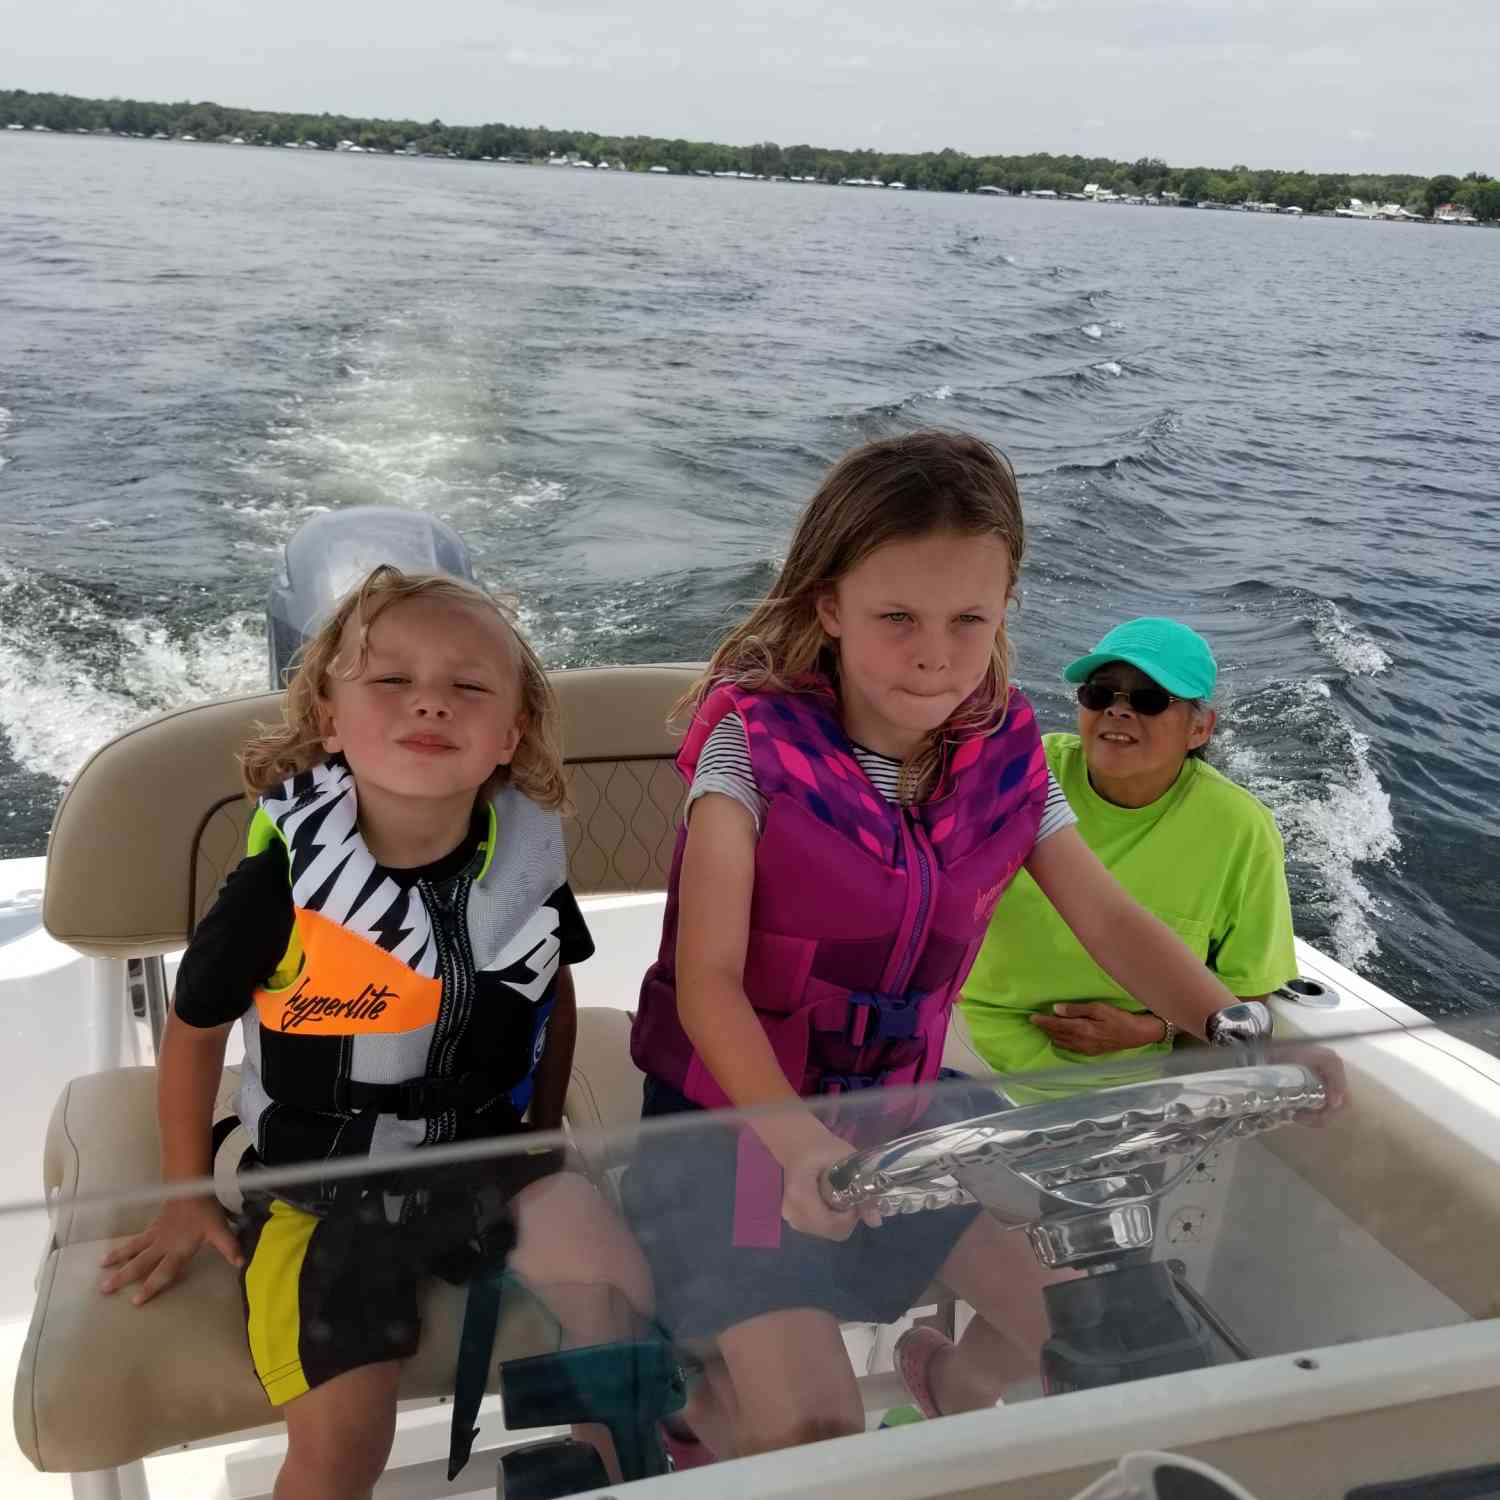 Title: Grandma & Her Crew - On board their Sportsman Open 212 Center Console - Location: Middleburg, FL. Participating in the Photo Contest #SportsmanNovember2018